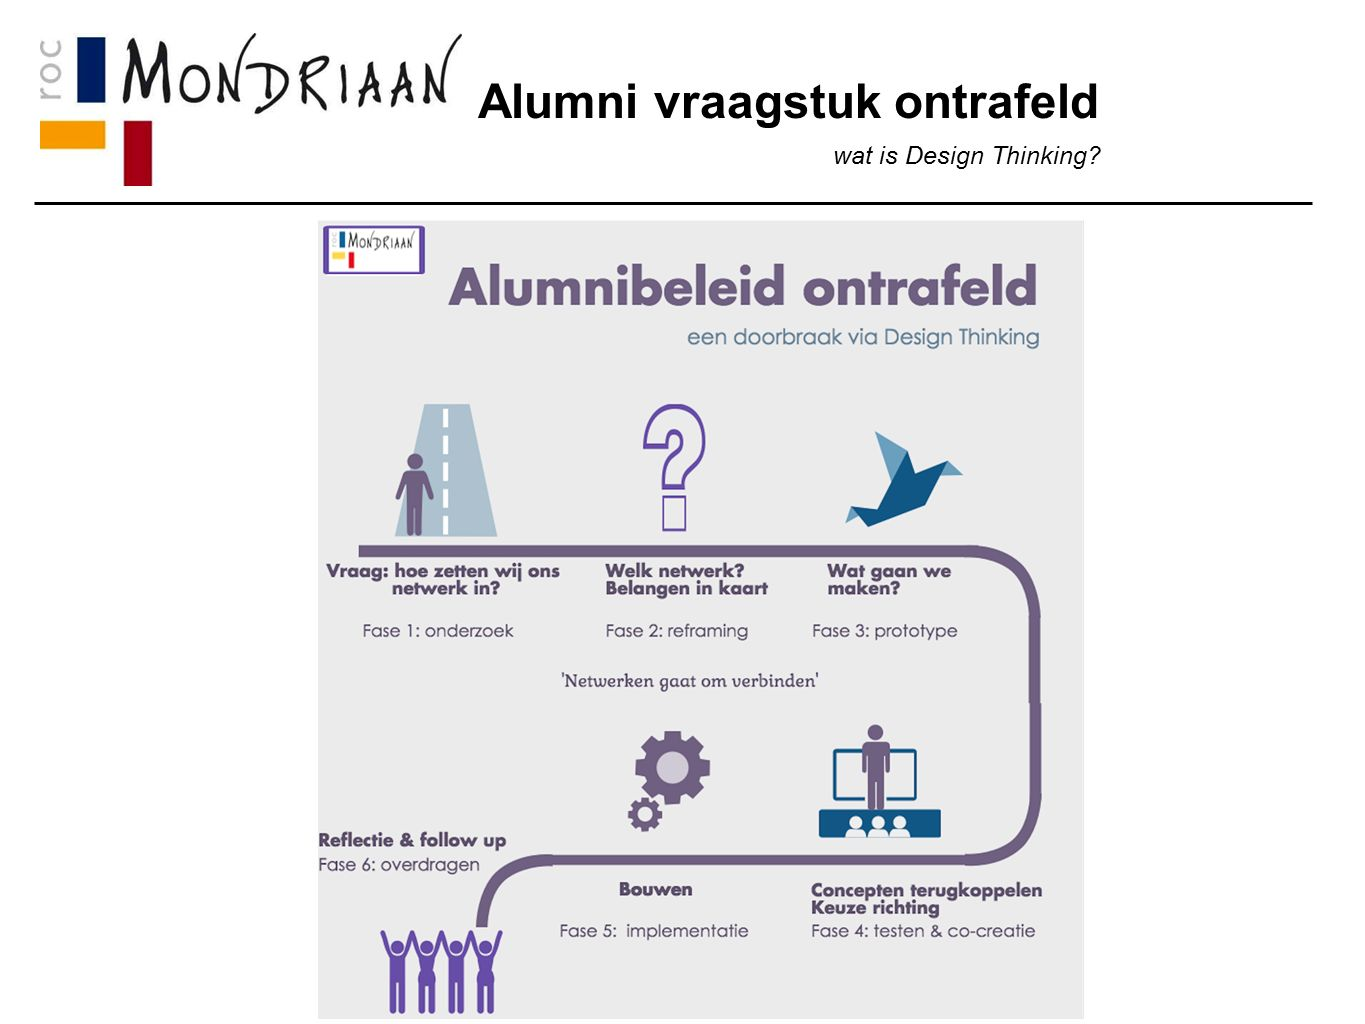 Alumni vraagstuk ontrafeld wat is Design Thinking?